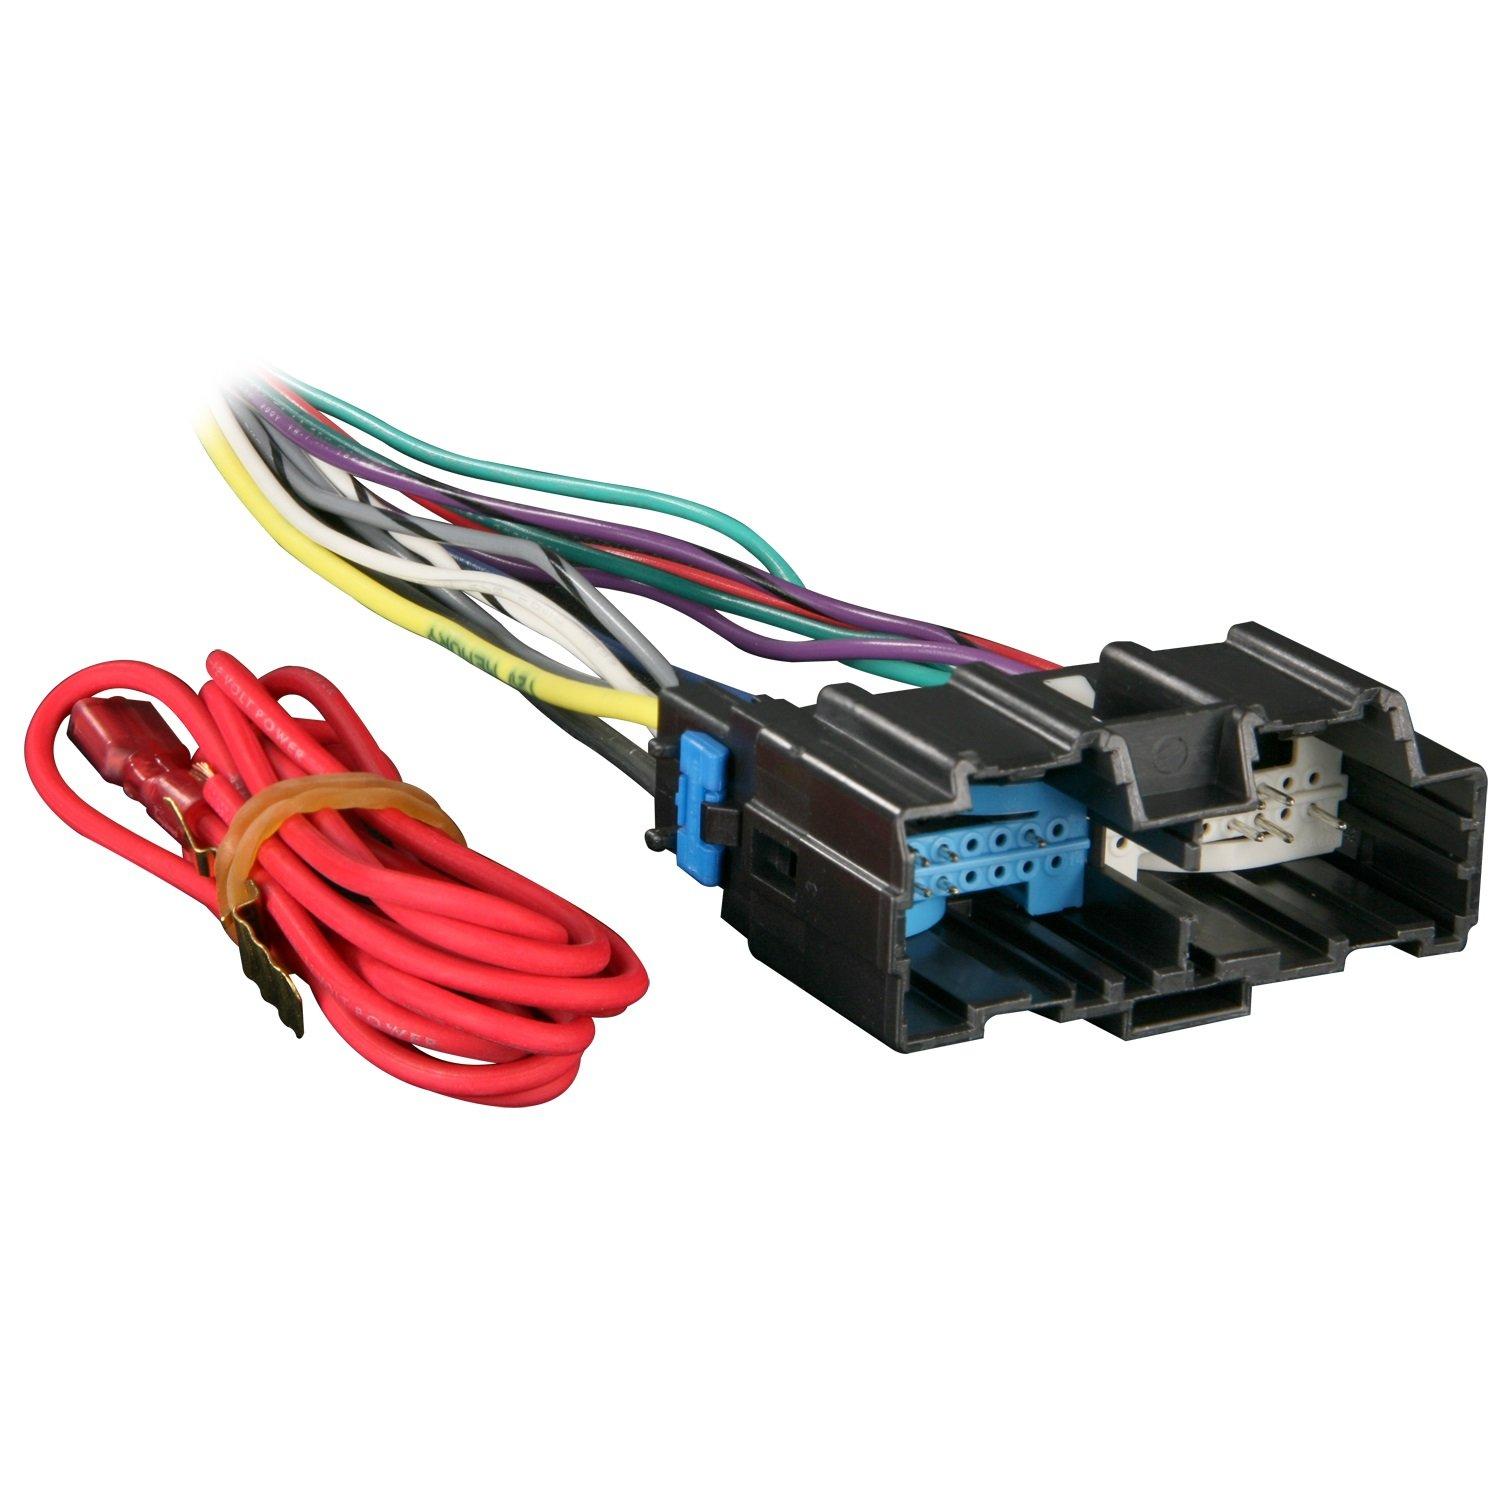 71ZzH dyg7L._SL1500_ amazon com metra 70 2105 radio wiring harness for impala monte Wire Single Life 4 Harnesstionships at arjmand.co